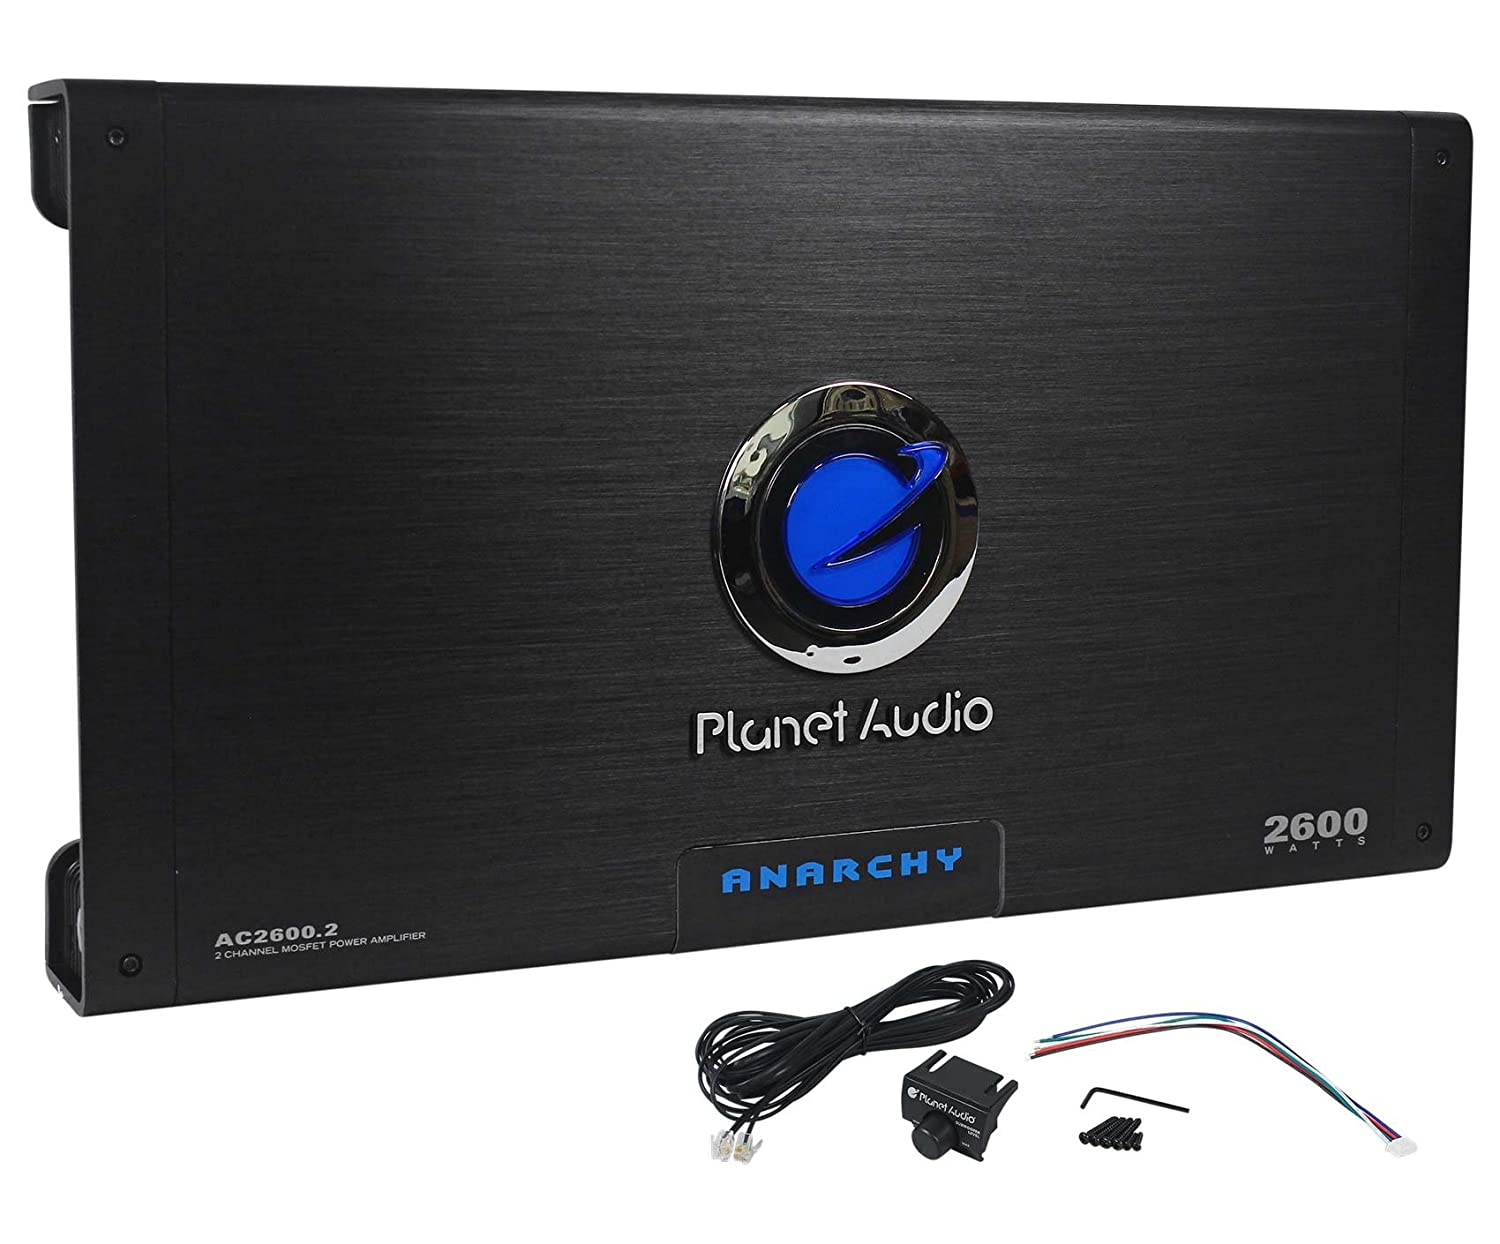 715pwSEBkwL._SL1500_ amazon com planet audio ac2600 2 2600 watt 2 channel car power Car Stereo Fuse at mifinder.co